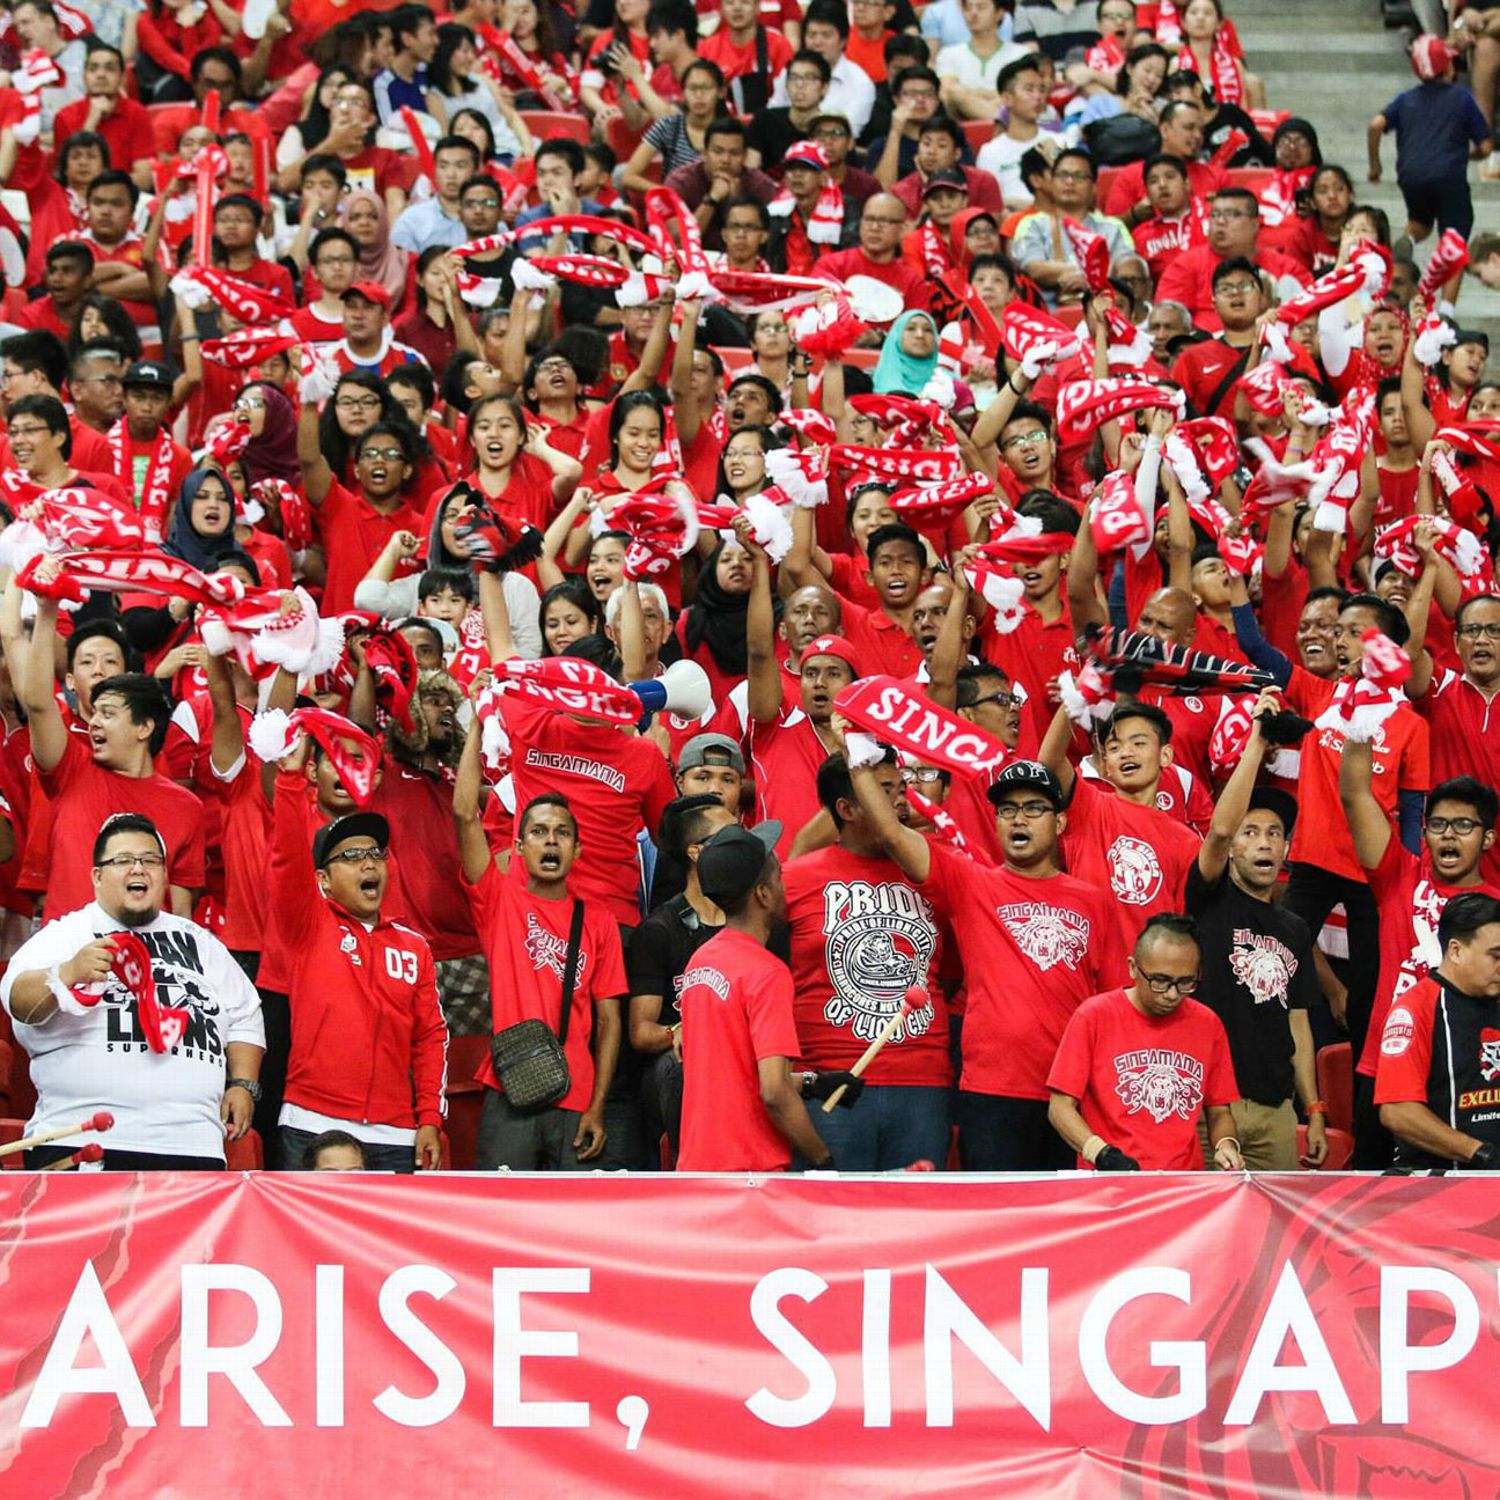 Liverpool 4 0 Borussia Dortmund Match Report Philippe: Singapore Football To Elect New Leadership By May 2017